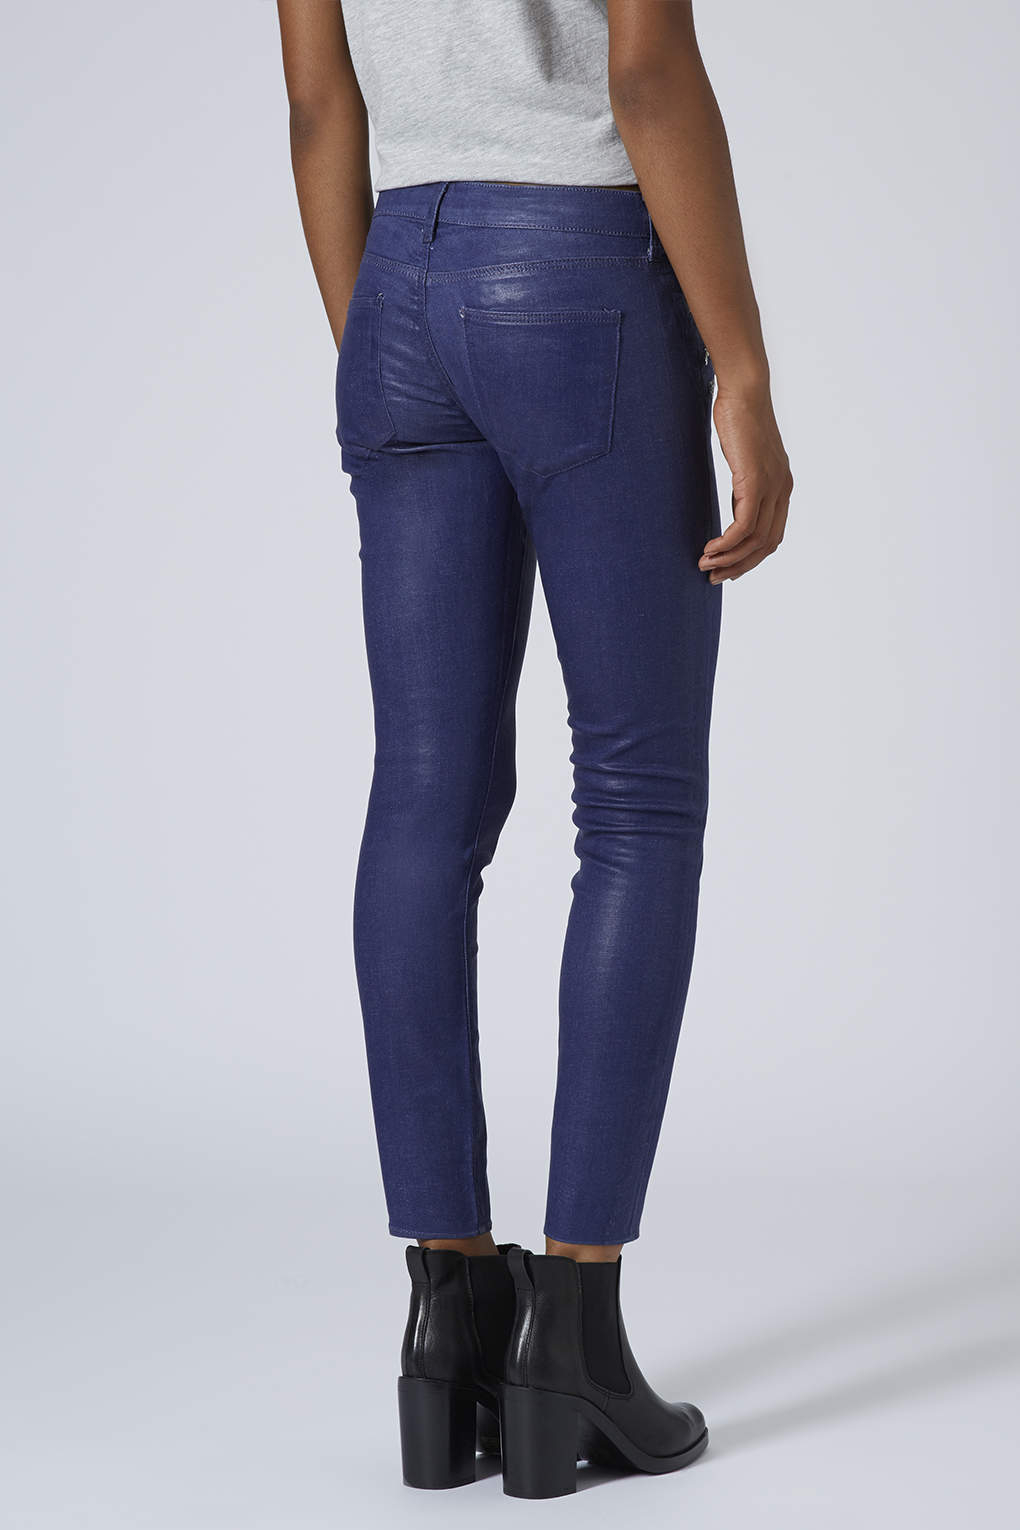 Topshop womens moto coated biker jeans navy blue in blue for Womens denim shirts topshop